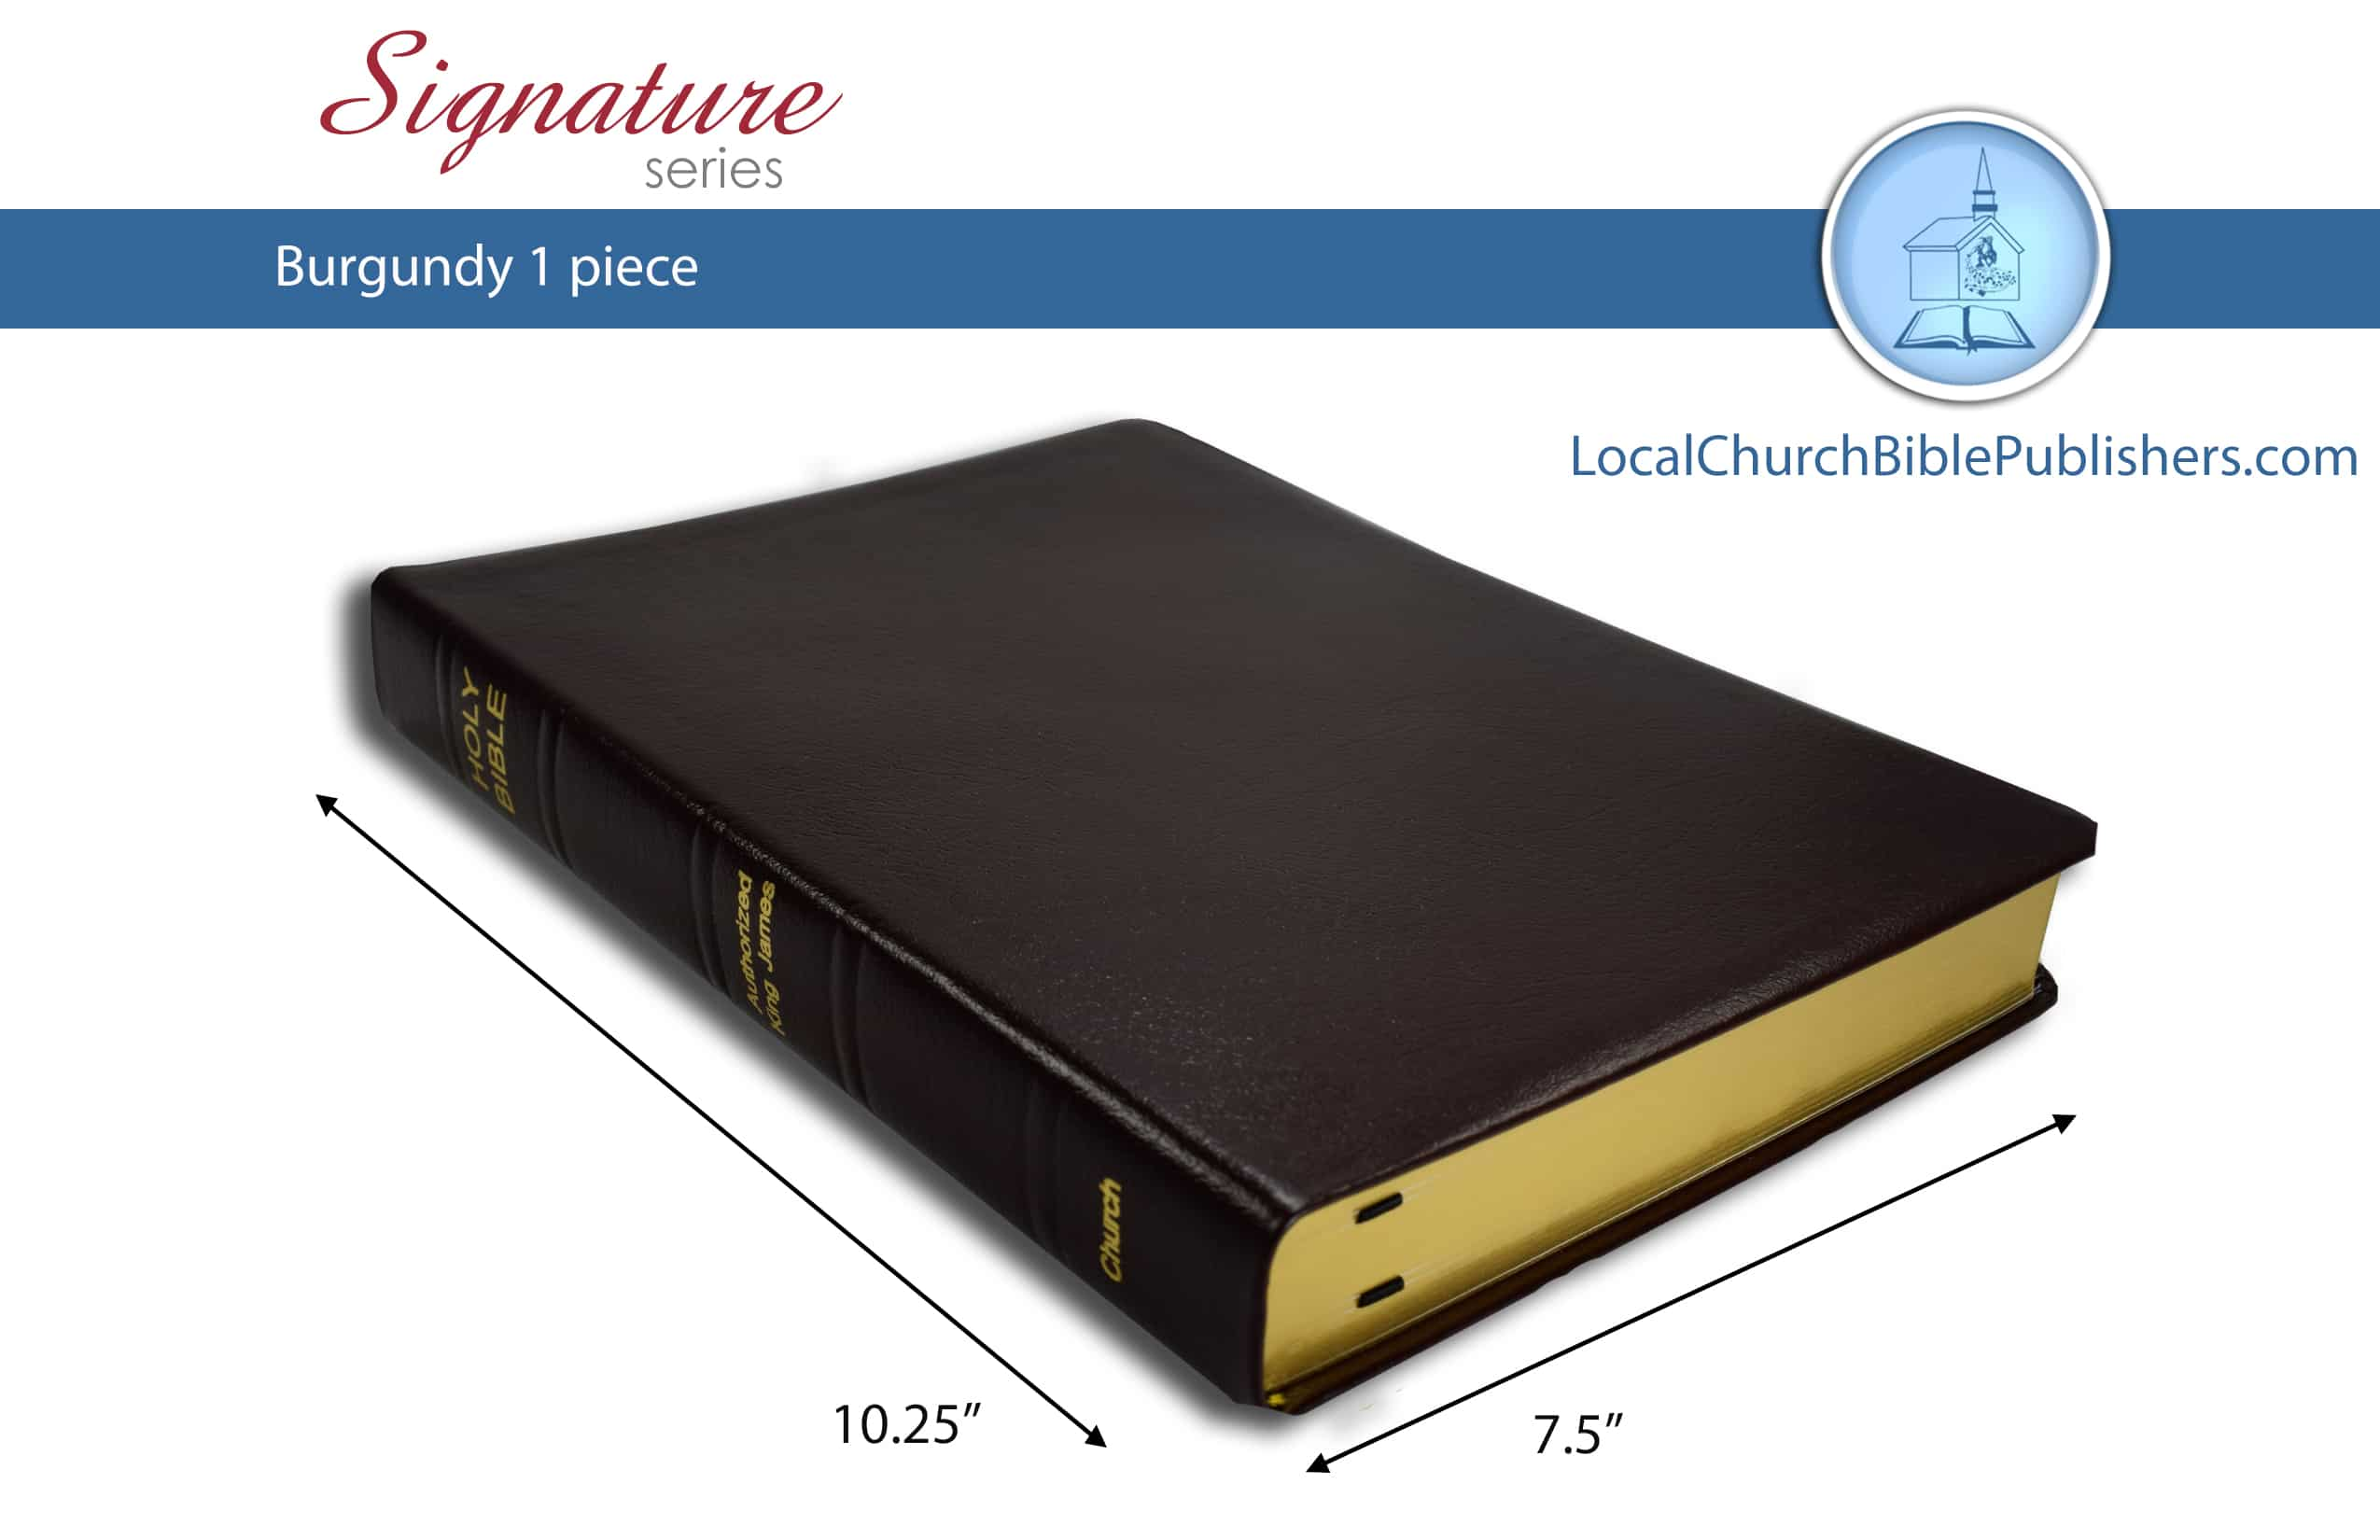 291 STBG Large Print Classic Study Bible Burgundy 1 Piece (Standard)  Limited Edition